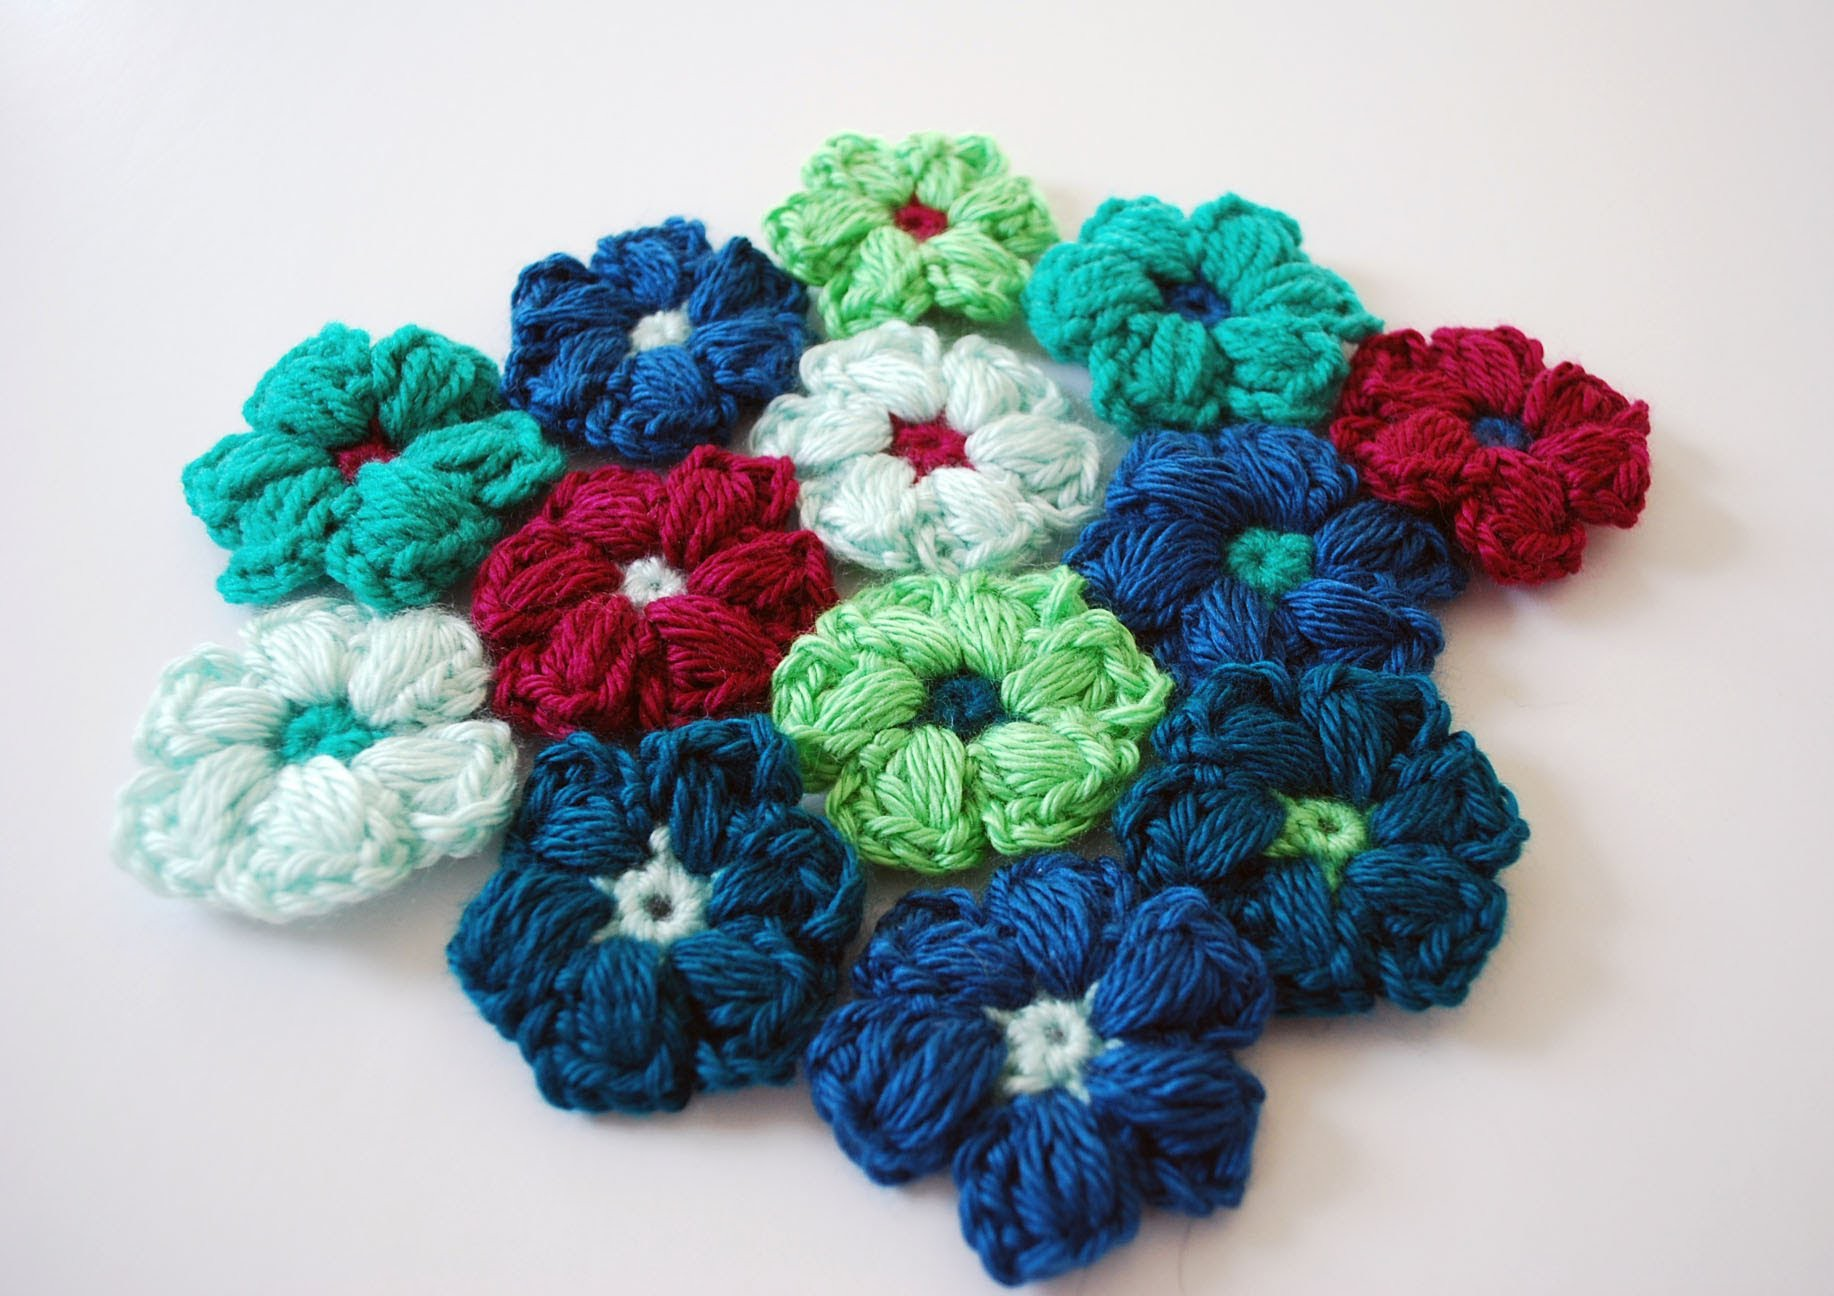 How to Crochet a Puff Stitch Flower: Beginner Friendly Tutorial